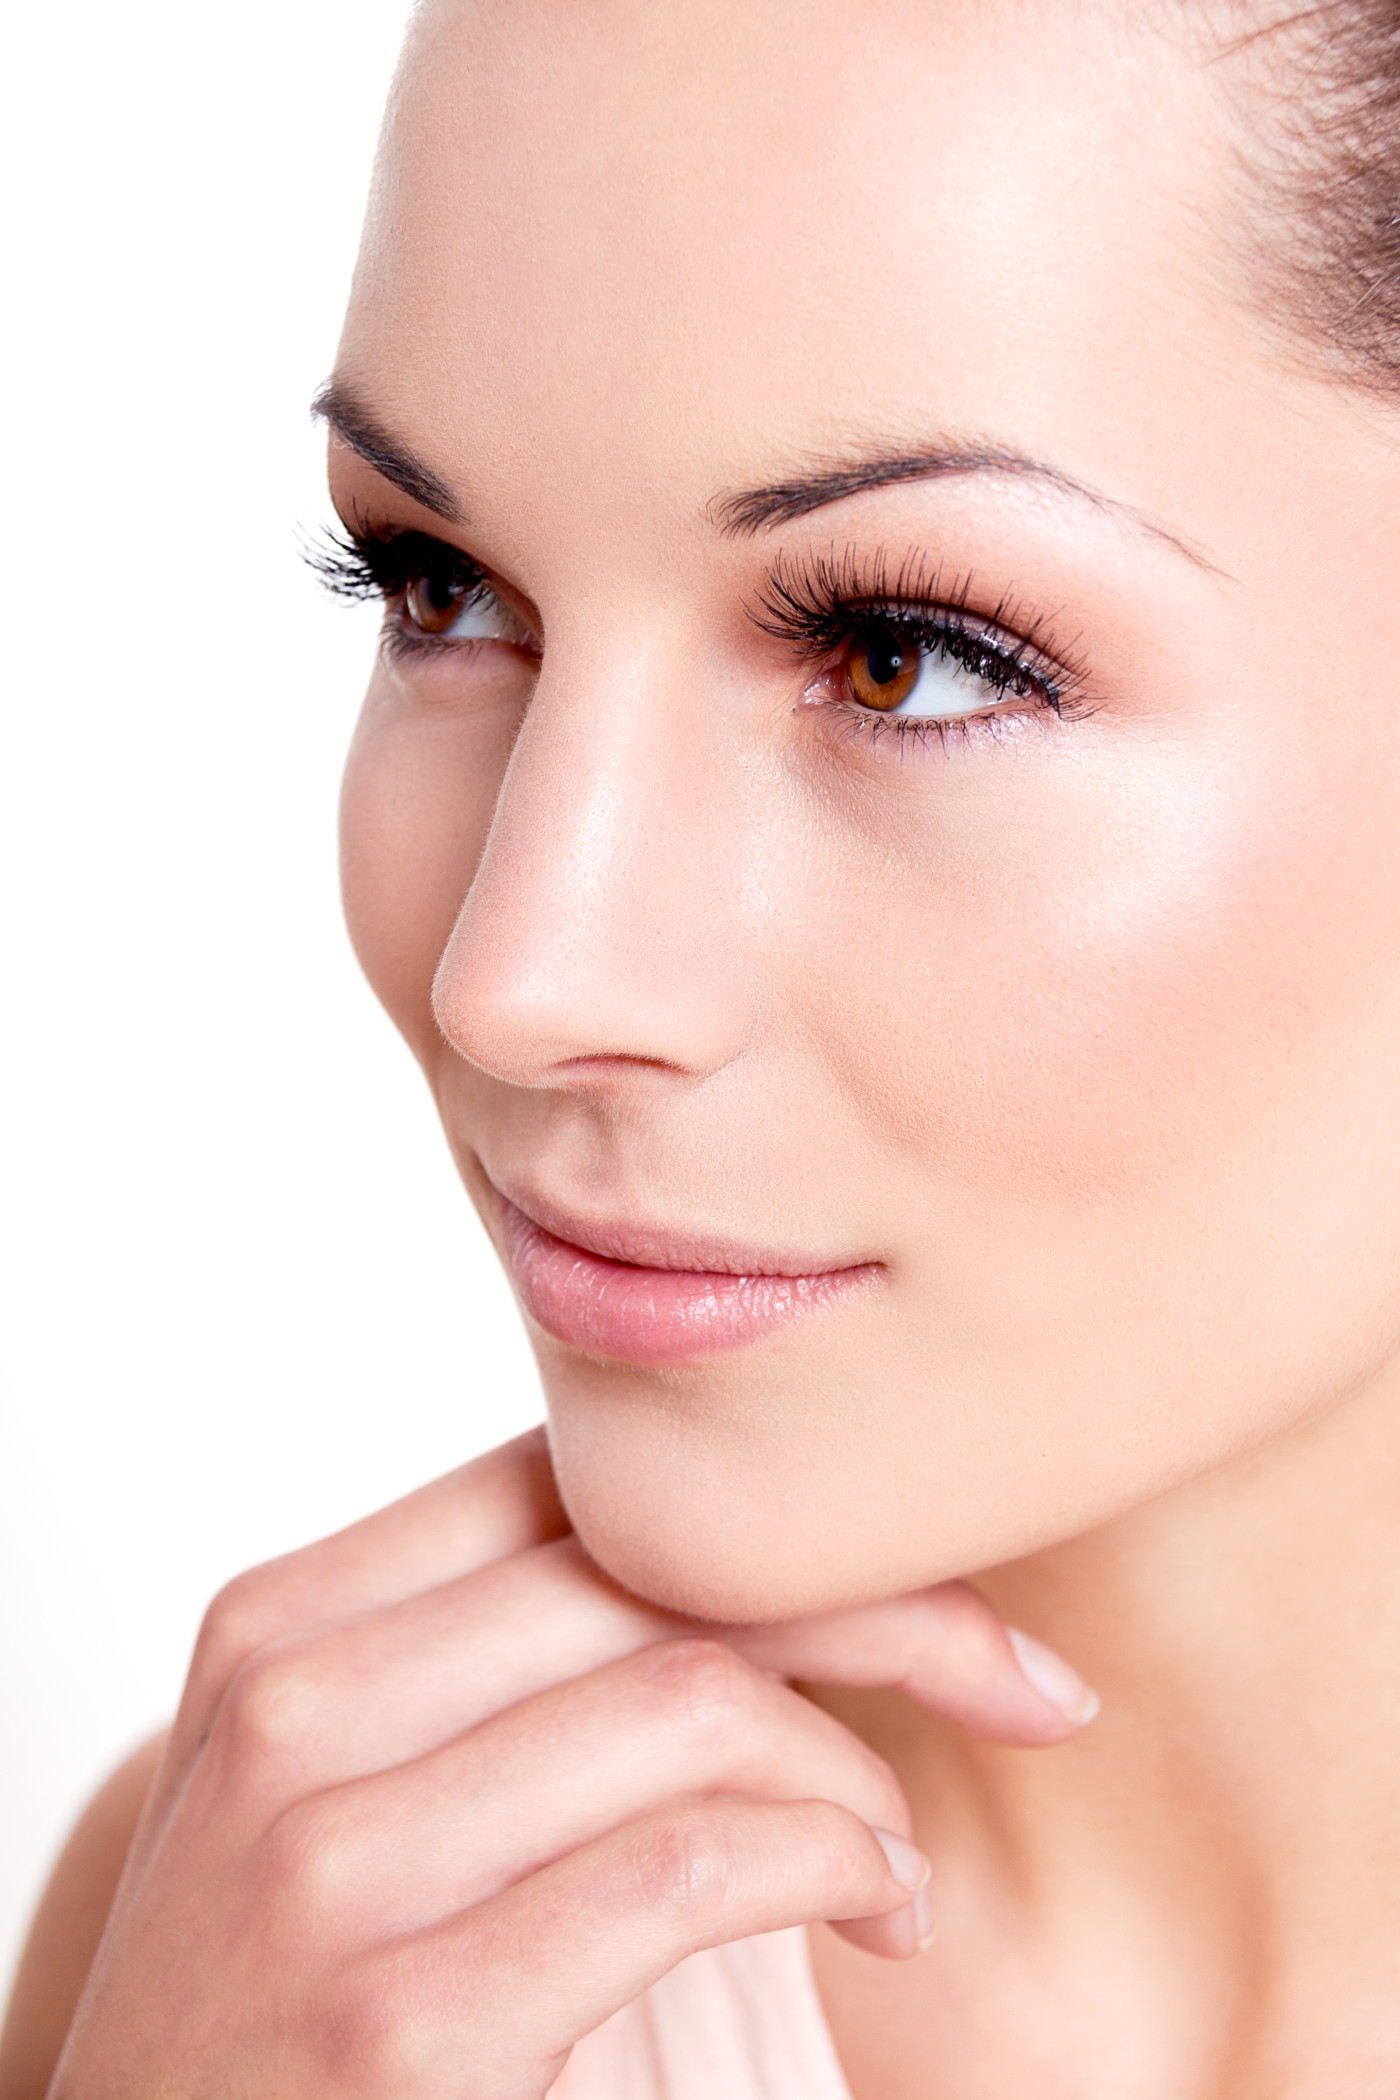 Rhinoplasty Surgeon Minneapolis